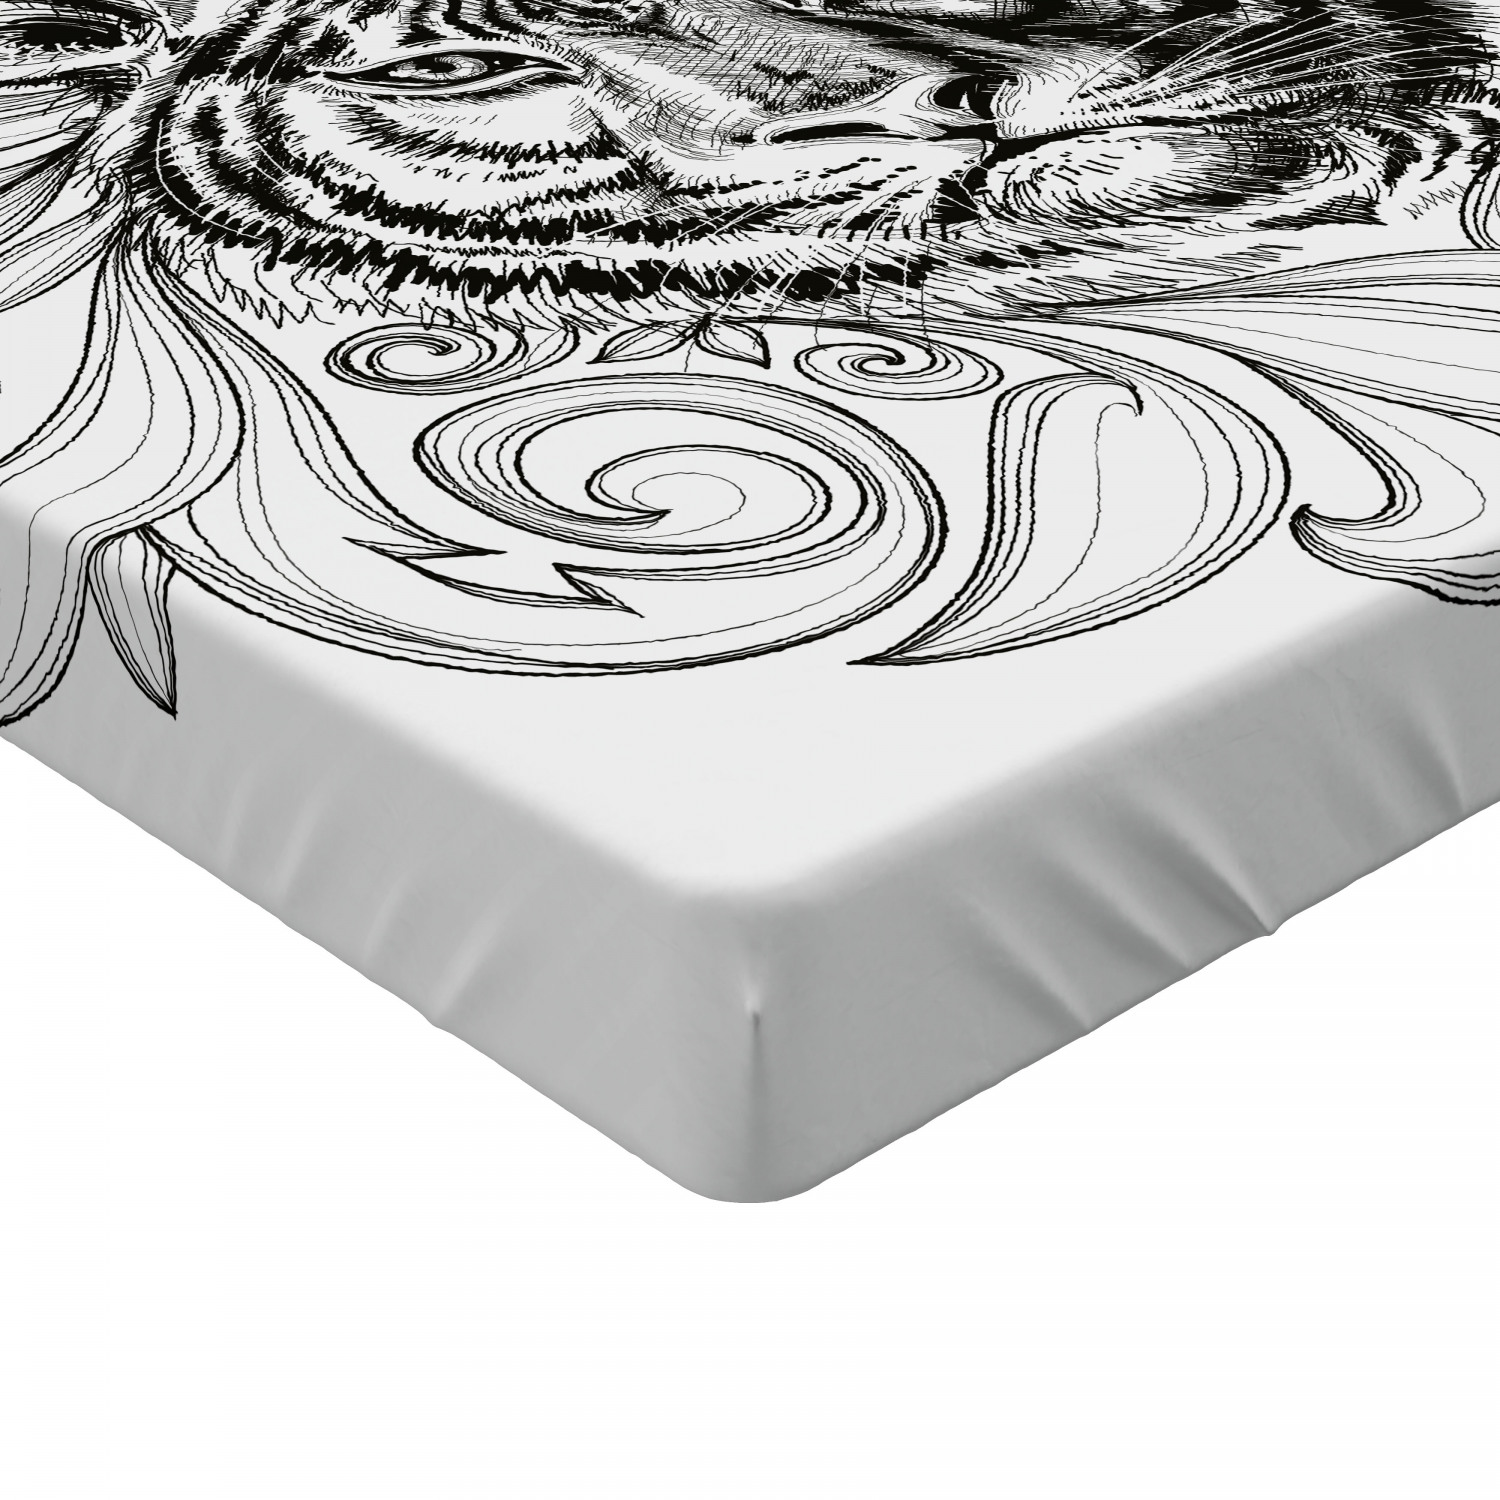 Tiger Fitted Sheet Cover with All-Round Elastic Pocket in 4 Sizes